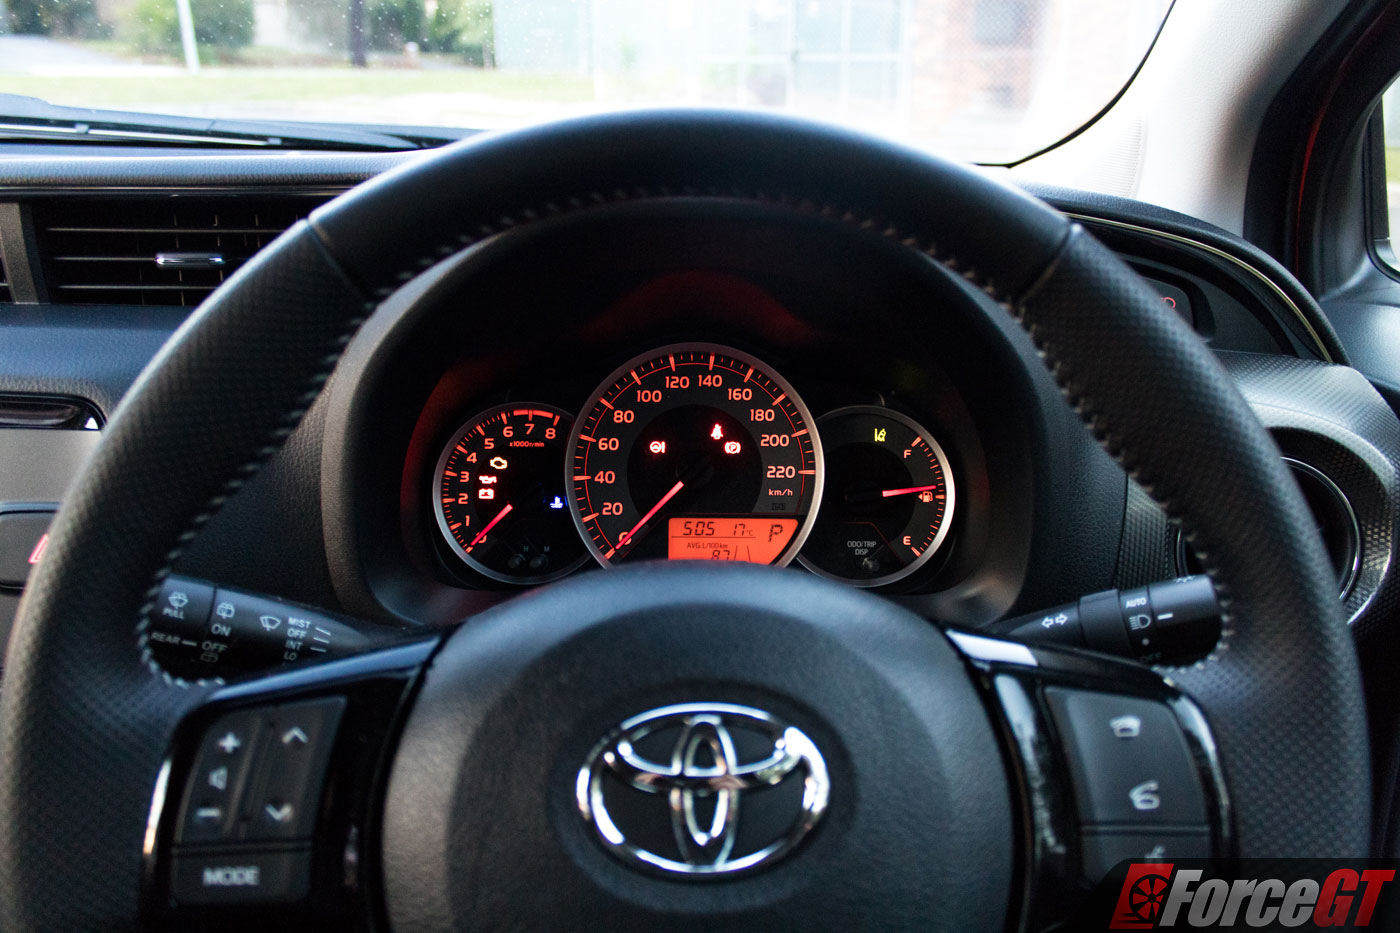 2017 Toyota Yaris Zr Review Forcegt Com